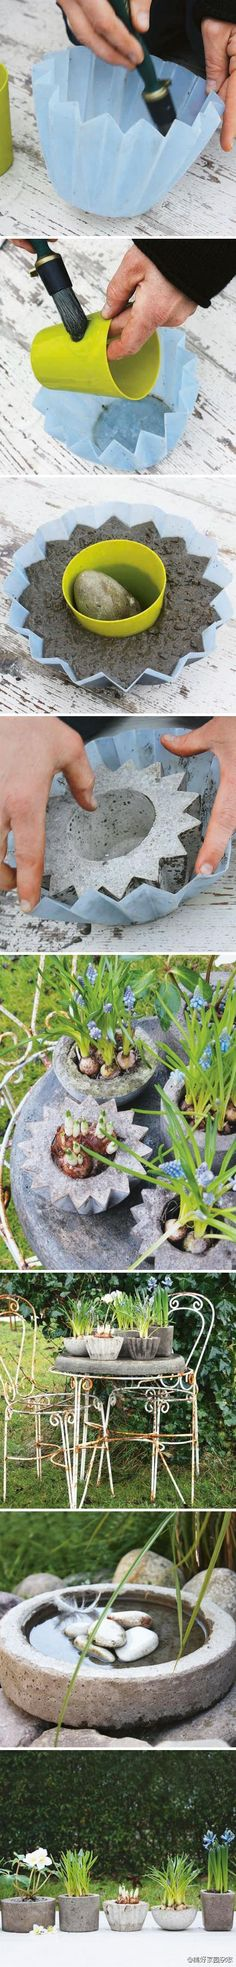 make your own planters